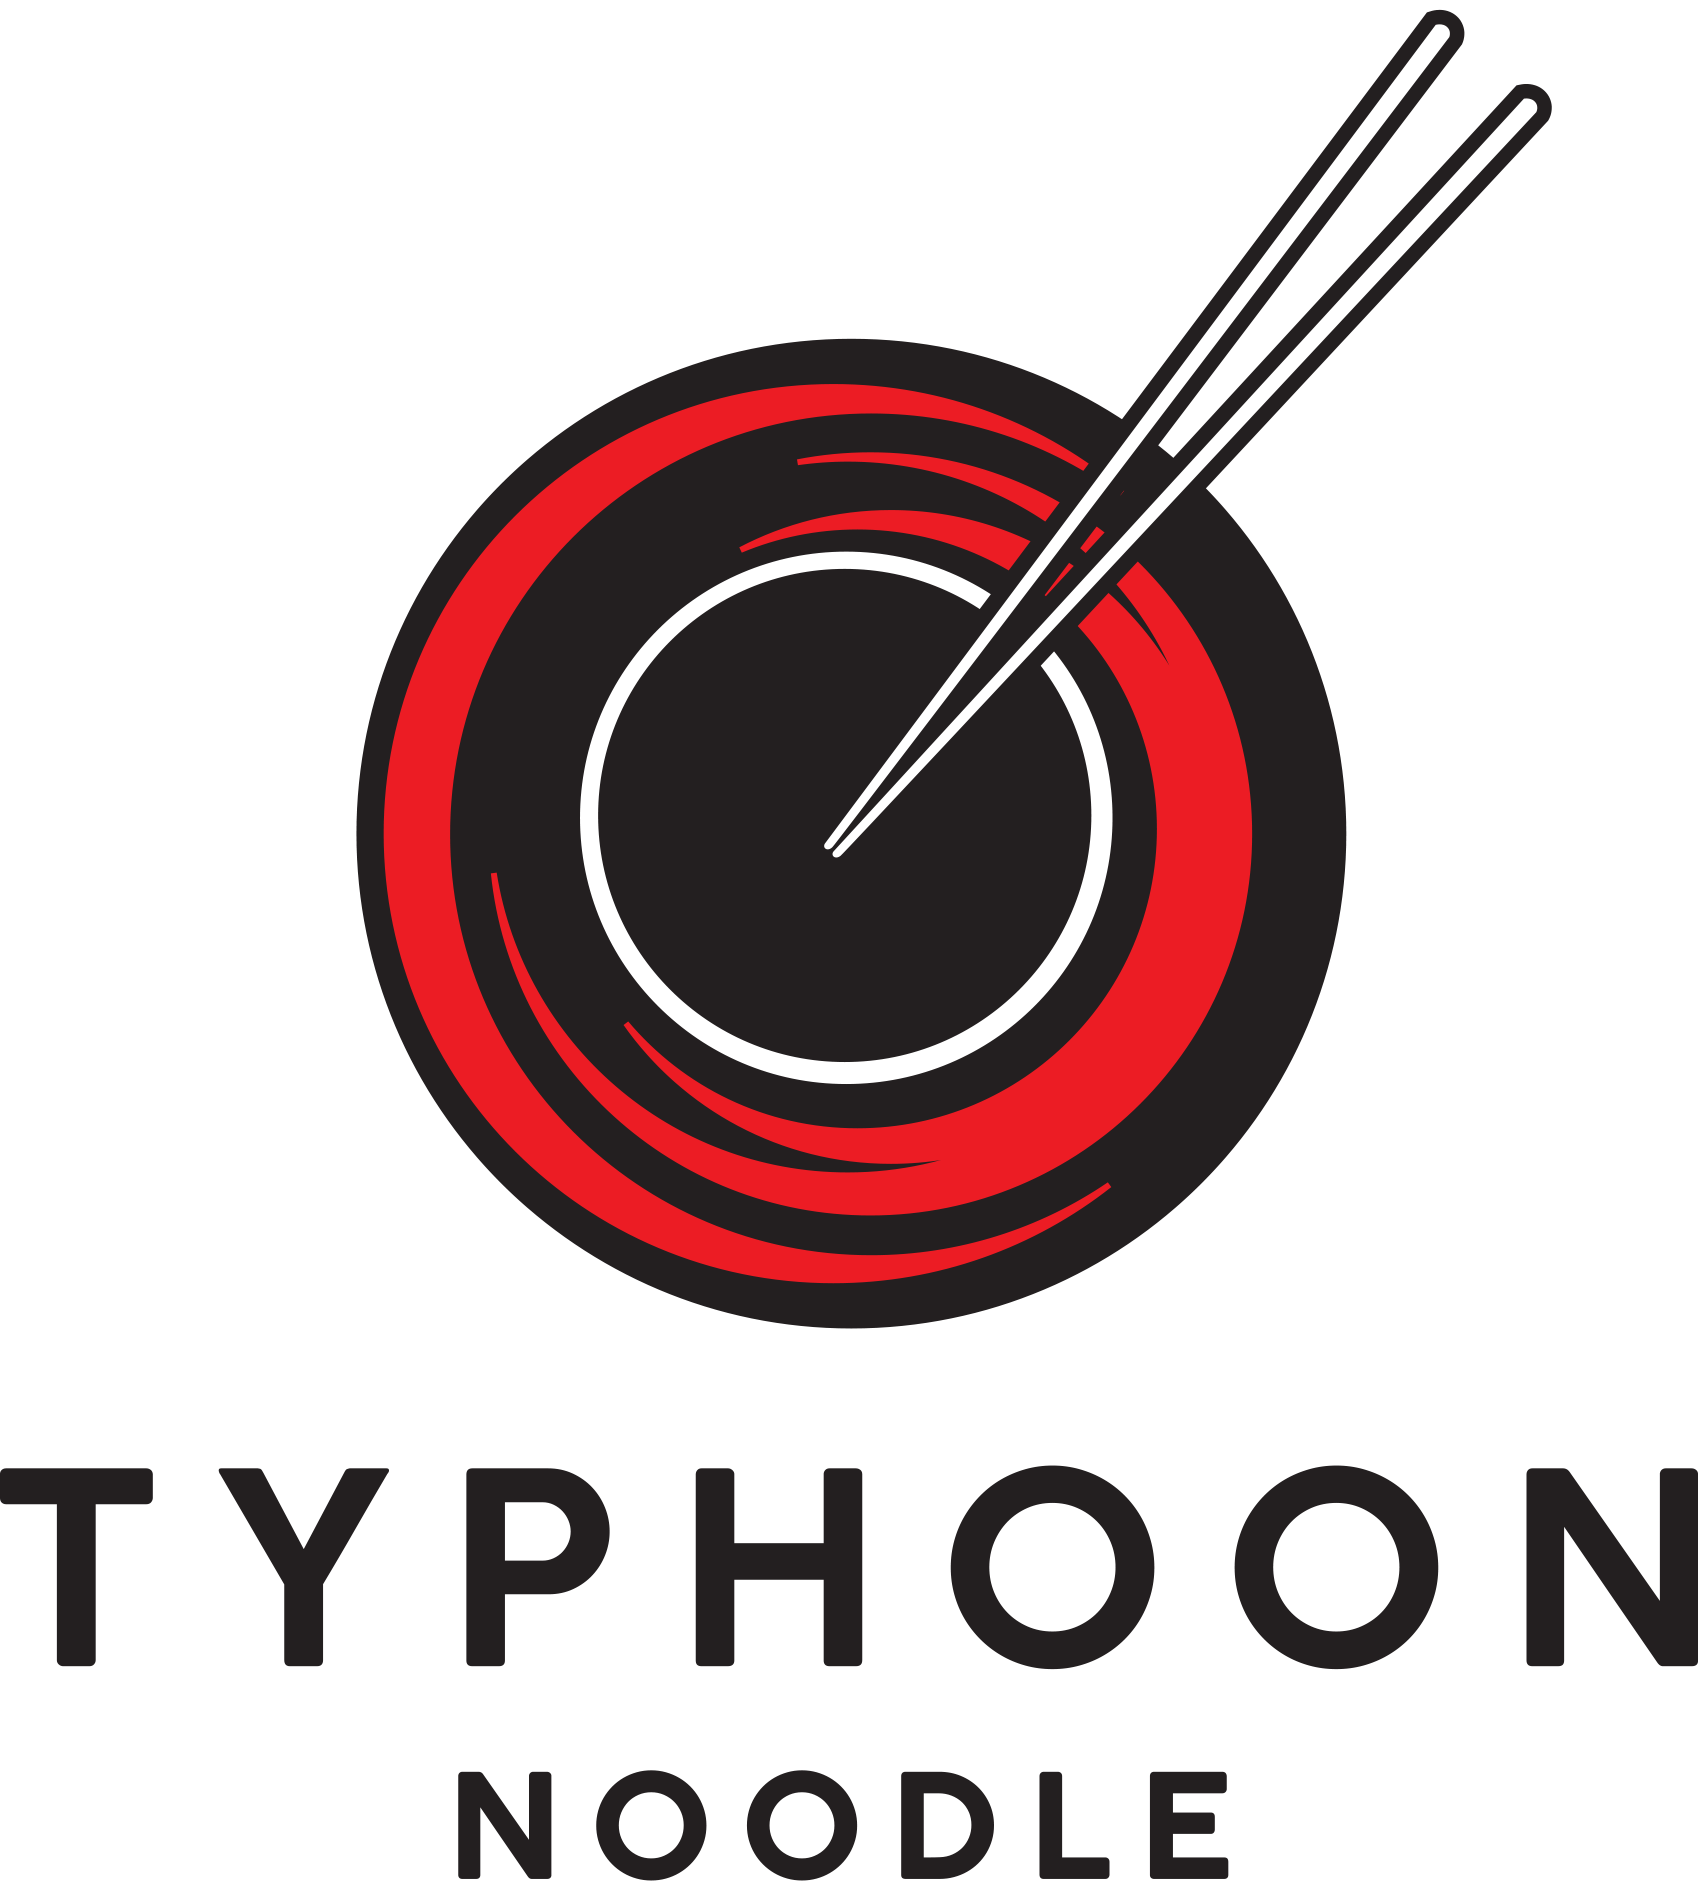 Typhoon Noodle Home